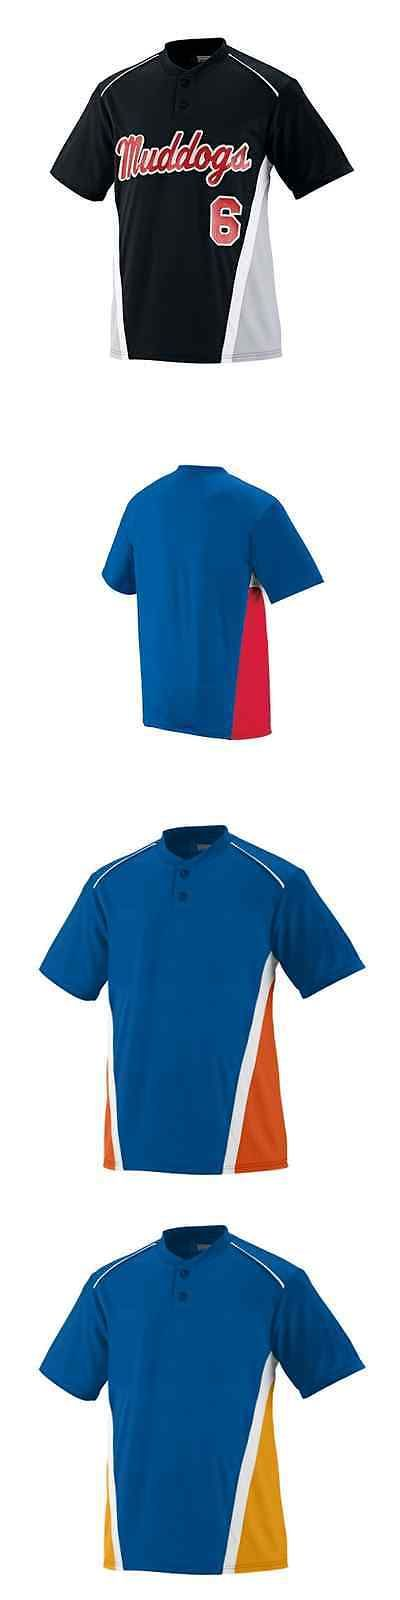 Other Basketball Clothing 158974: Custom Softball Team Jerseys (10 Jerseys, Logo And Number Included) -> BUY IT NOW ONLY: $250 on eBay!